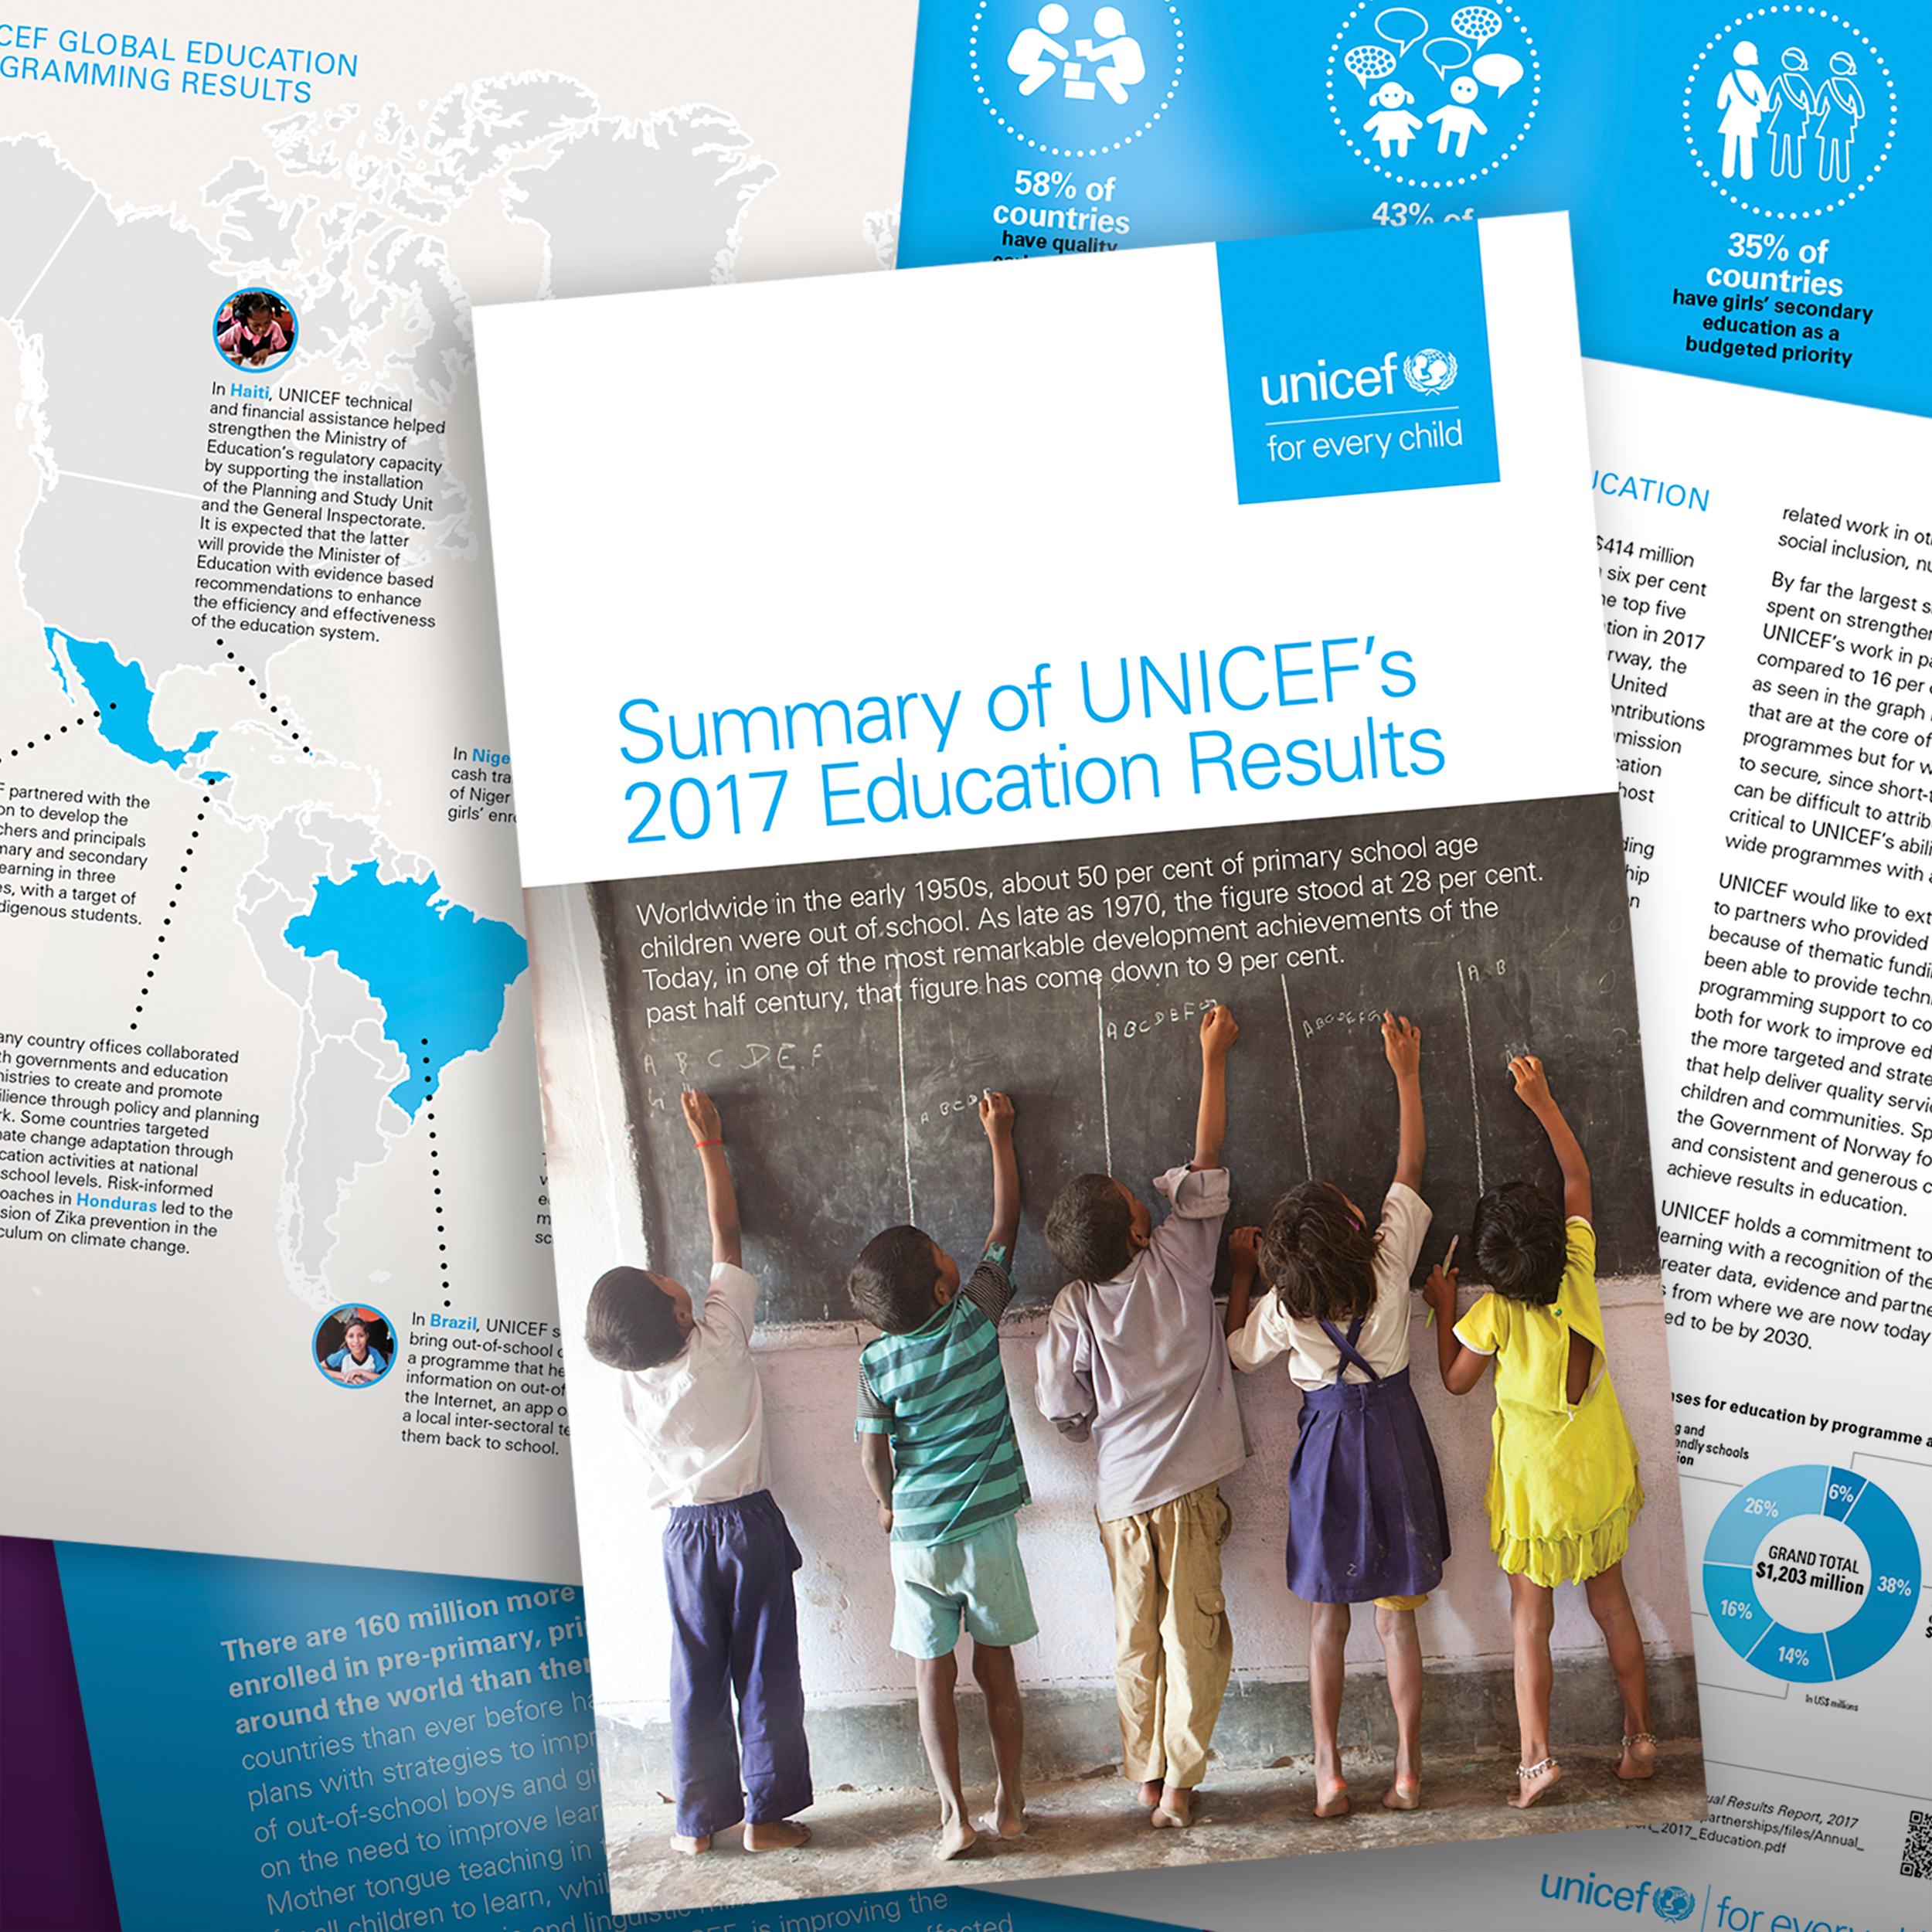 UNICEF 2017 Rebrand   The 'UNICEF | for every child' rebranded design system includes color, typography, nomenclature, templates, and guidelines to assure worldwide continuity.